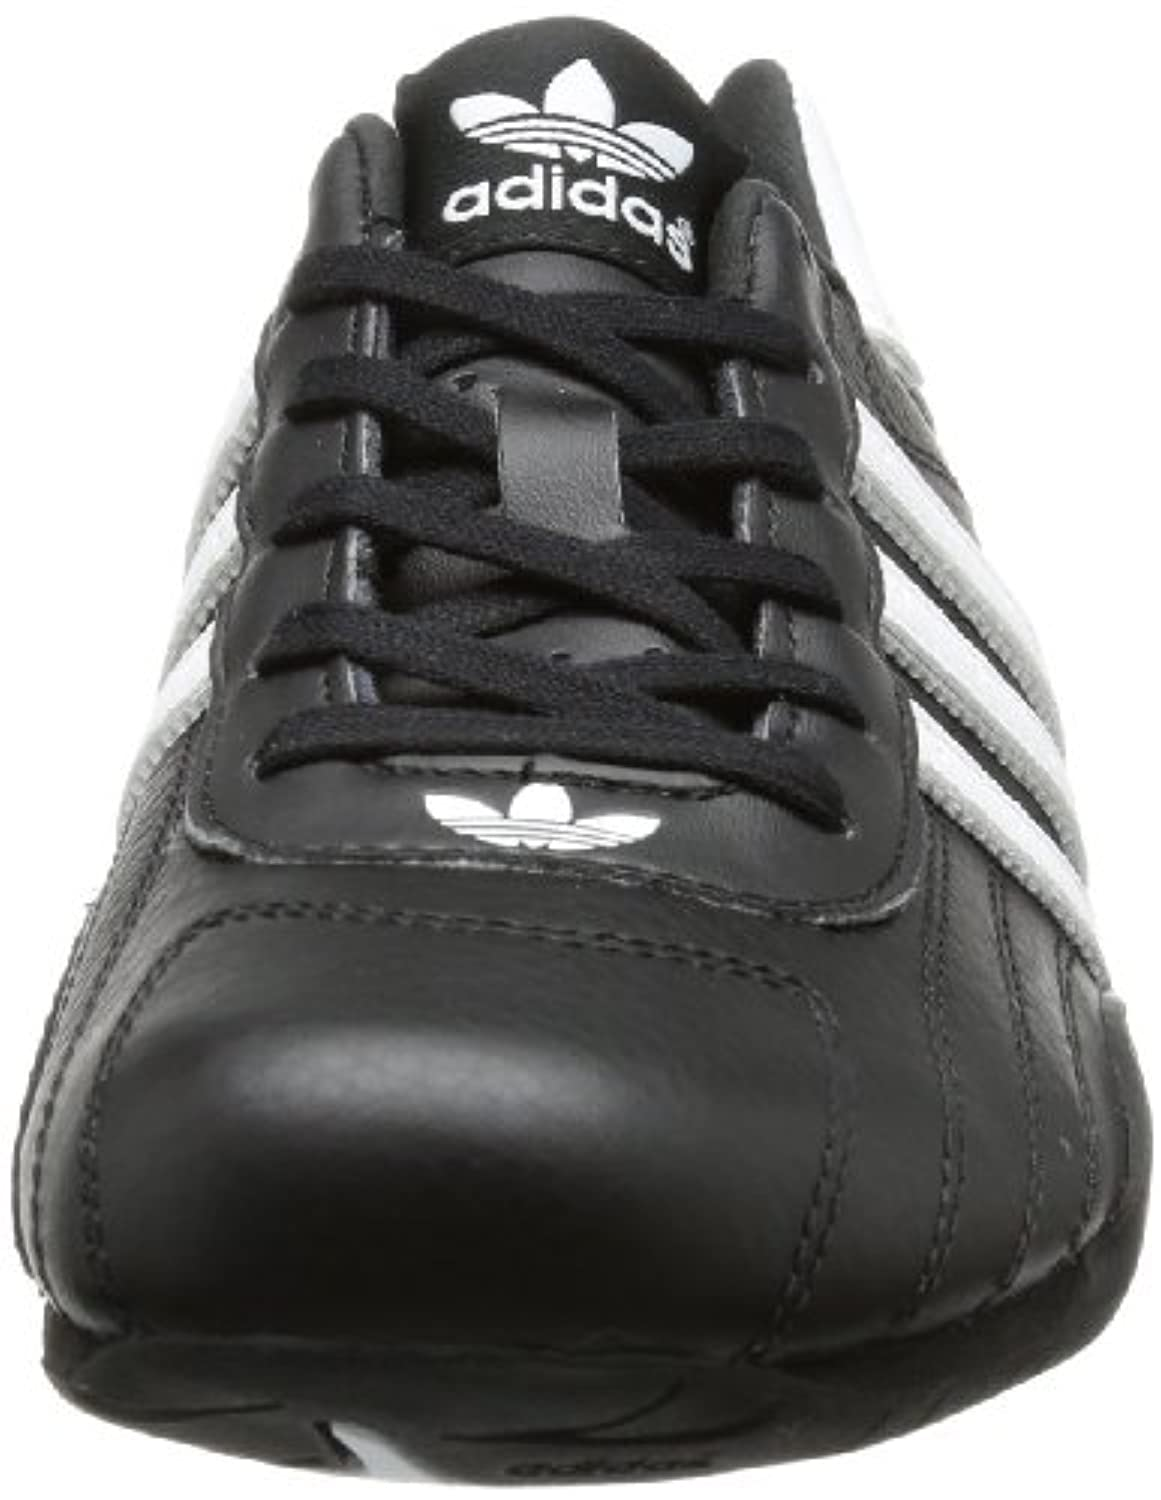 adidas originals adi racer low goodyear 42 46 5 new 110. Black Bedroom Furniture Sets. Home Design Ideas